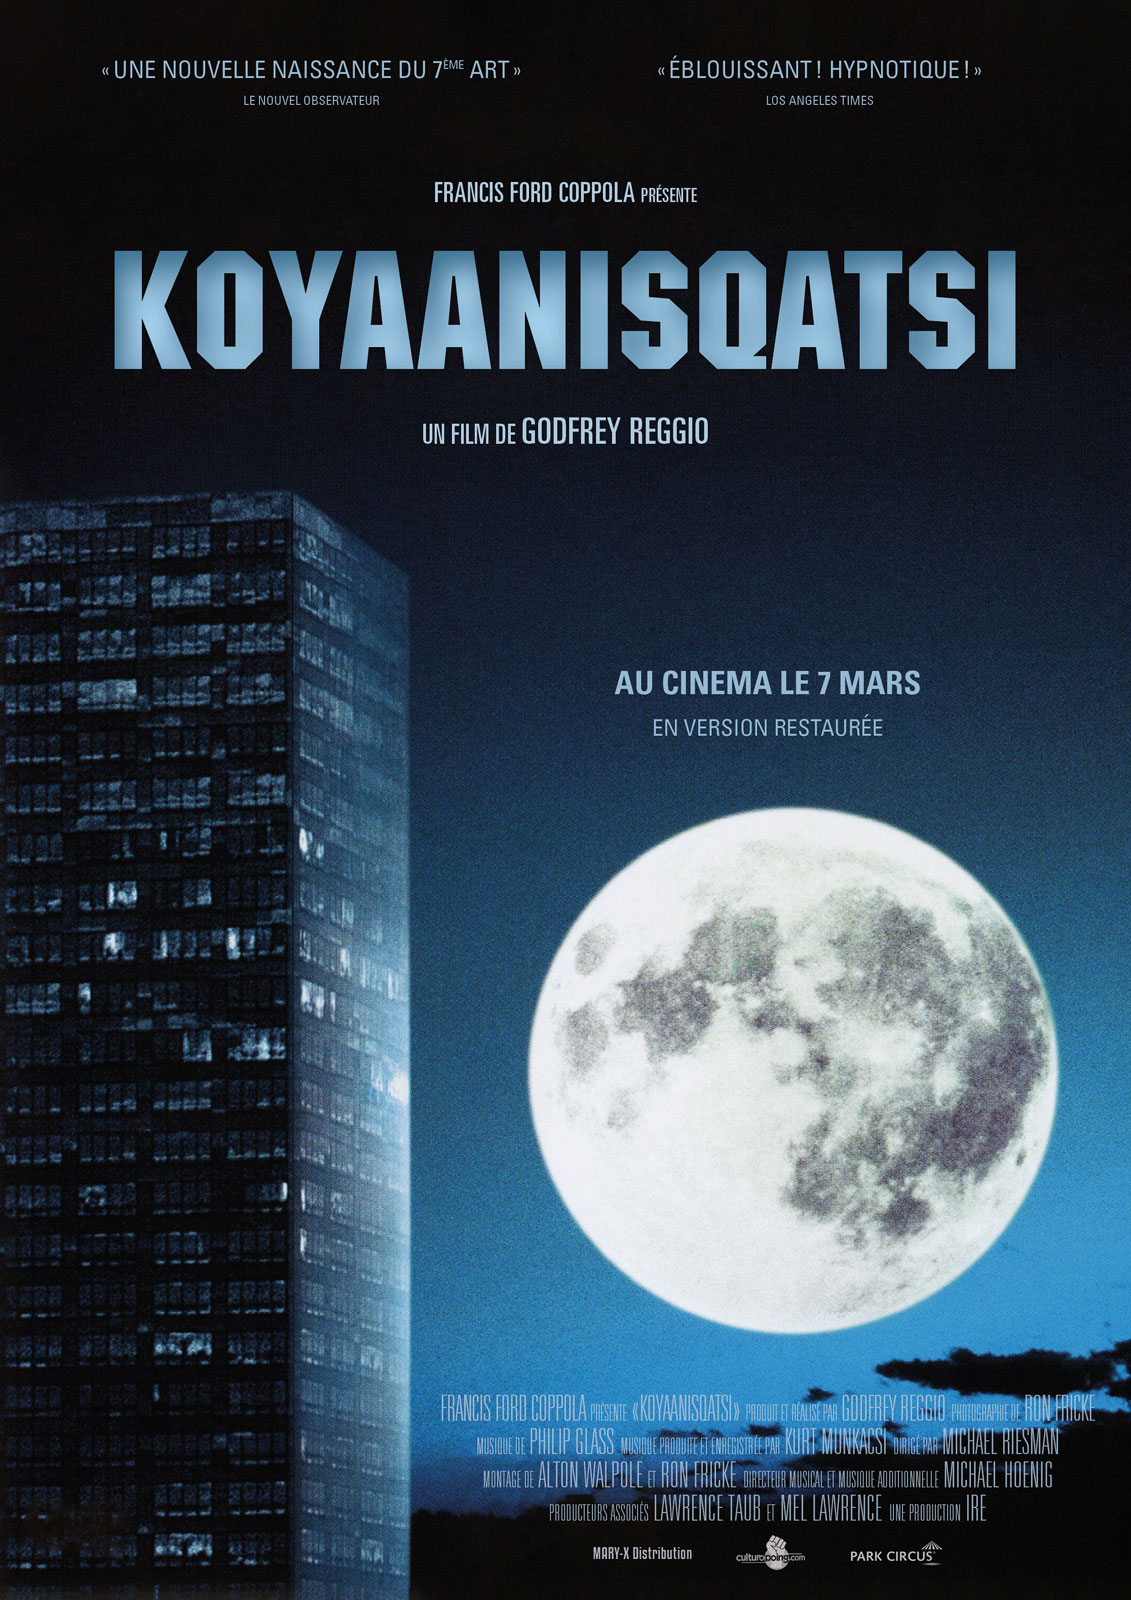 An analysis of koyaanisqatsi by godfrey reggio